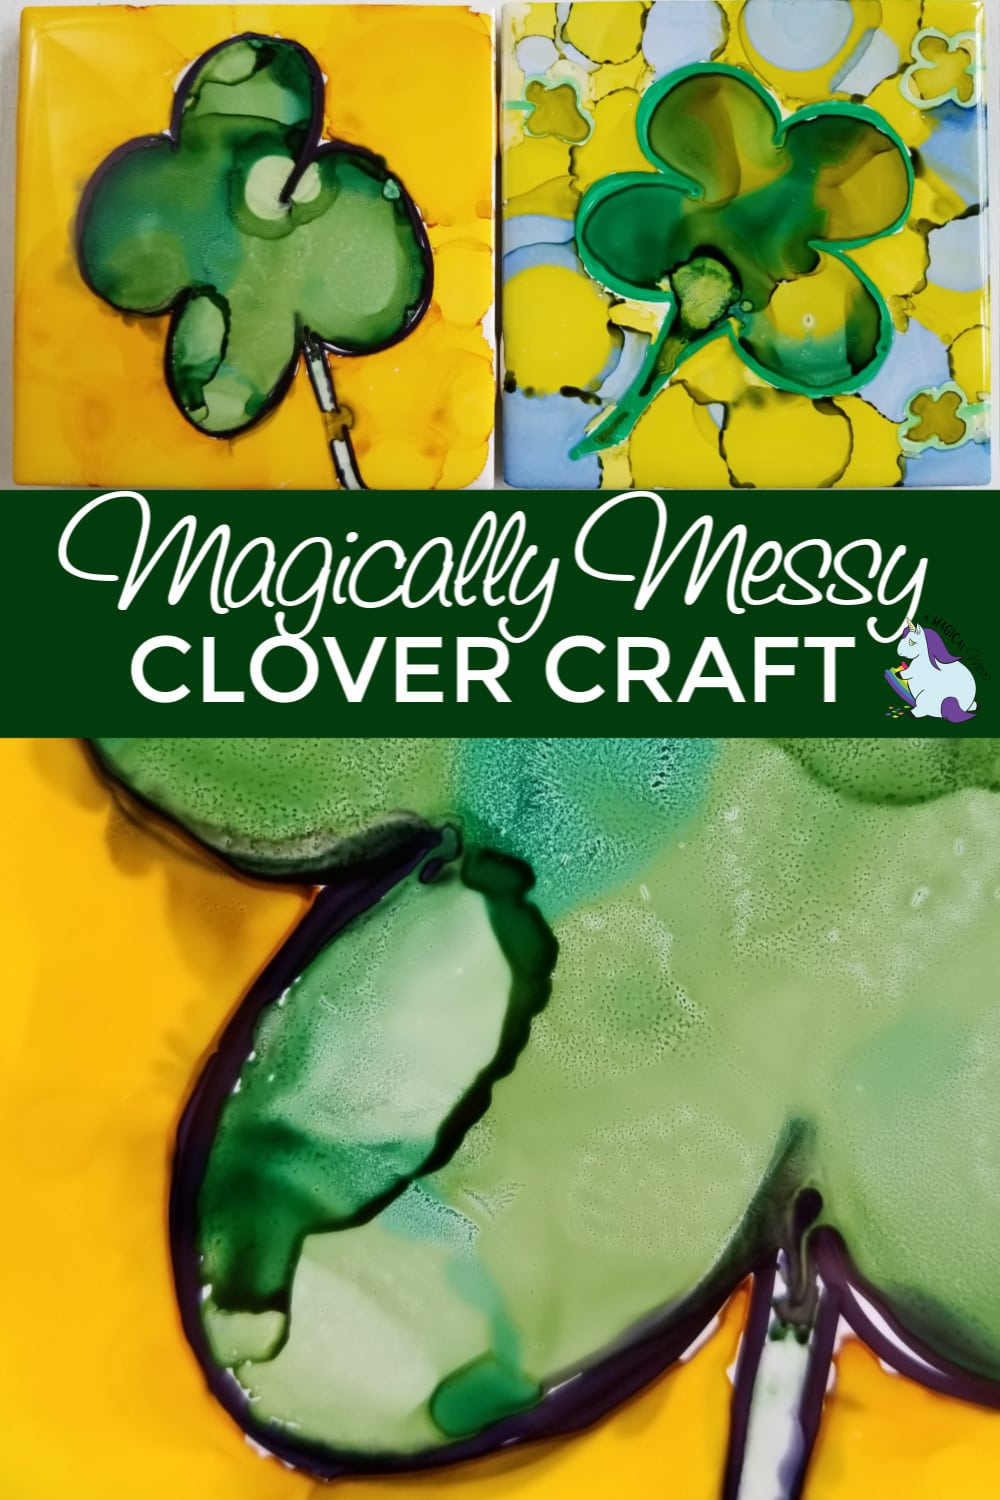 Lucky four-leaf clover crafts perfect for St. Patrick's Day! #AlcoholInk #StPatricksDay #art #crafts #diy #projects #homemade #homemadegifts #clovers #green